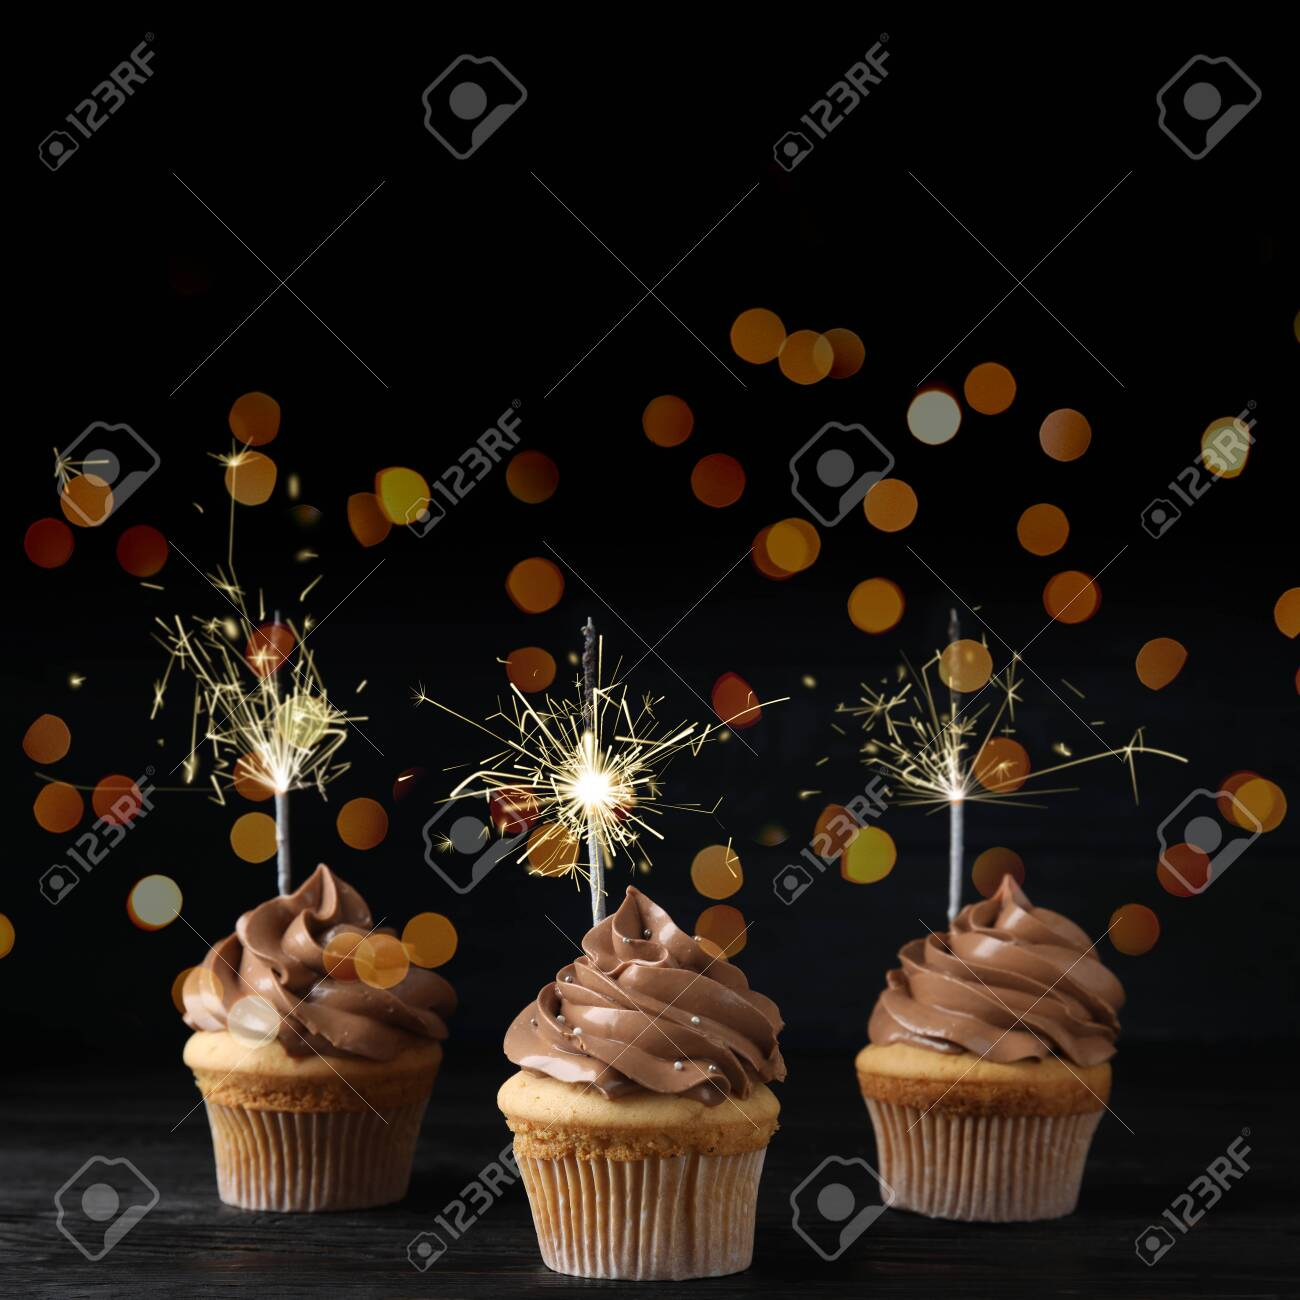 Fantastic Birthday Cupcakes With Sparklers On Wooden Table Against Dark Funny Birthday Cards Online Inifofree Goldxyz